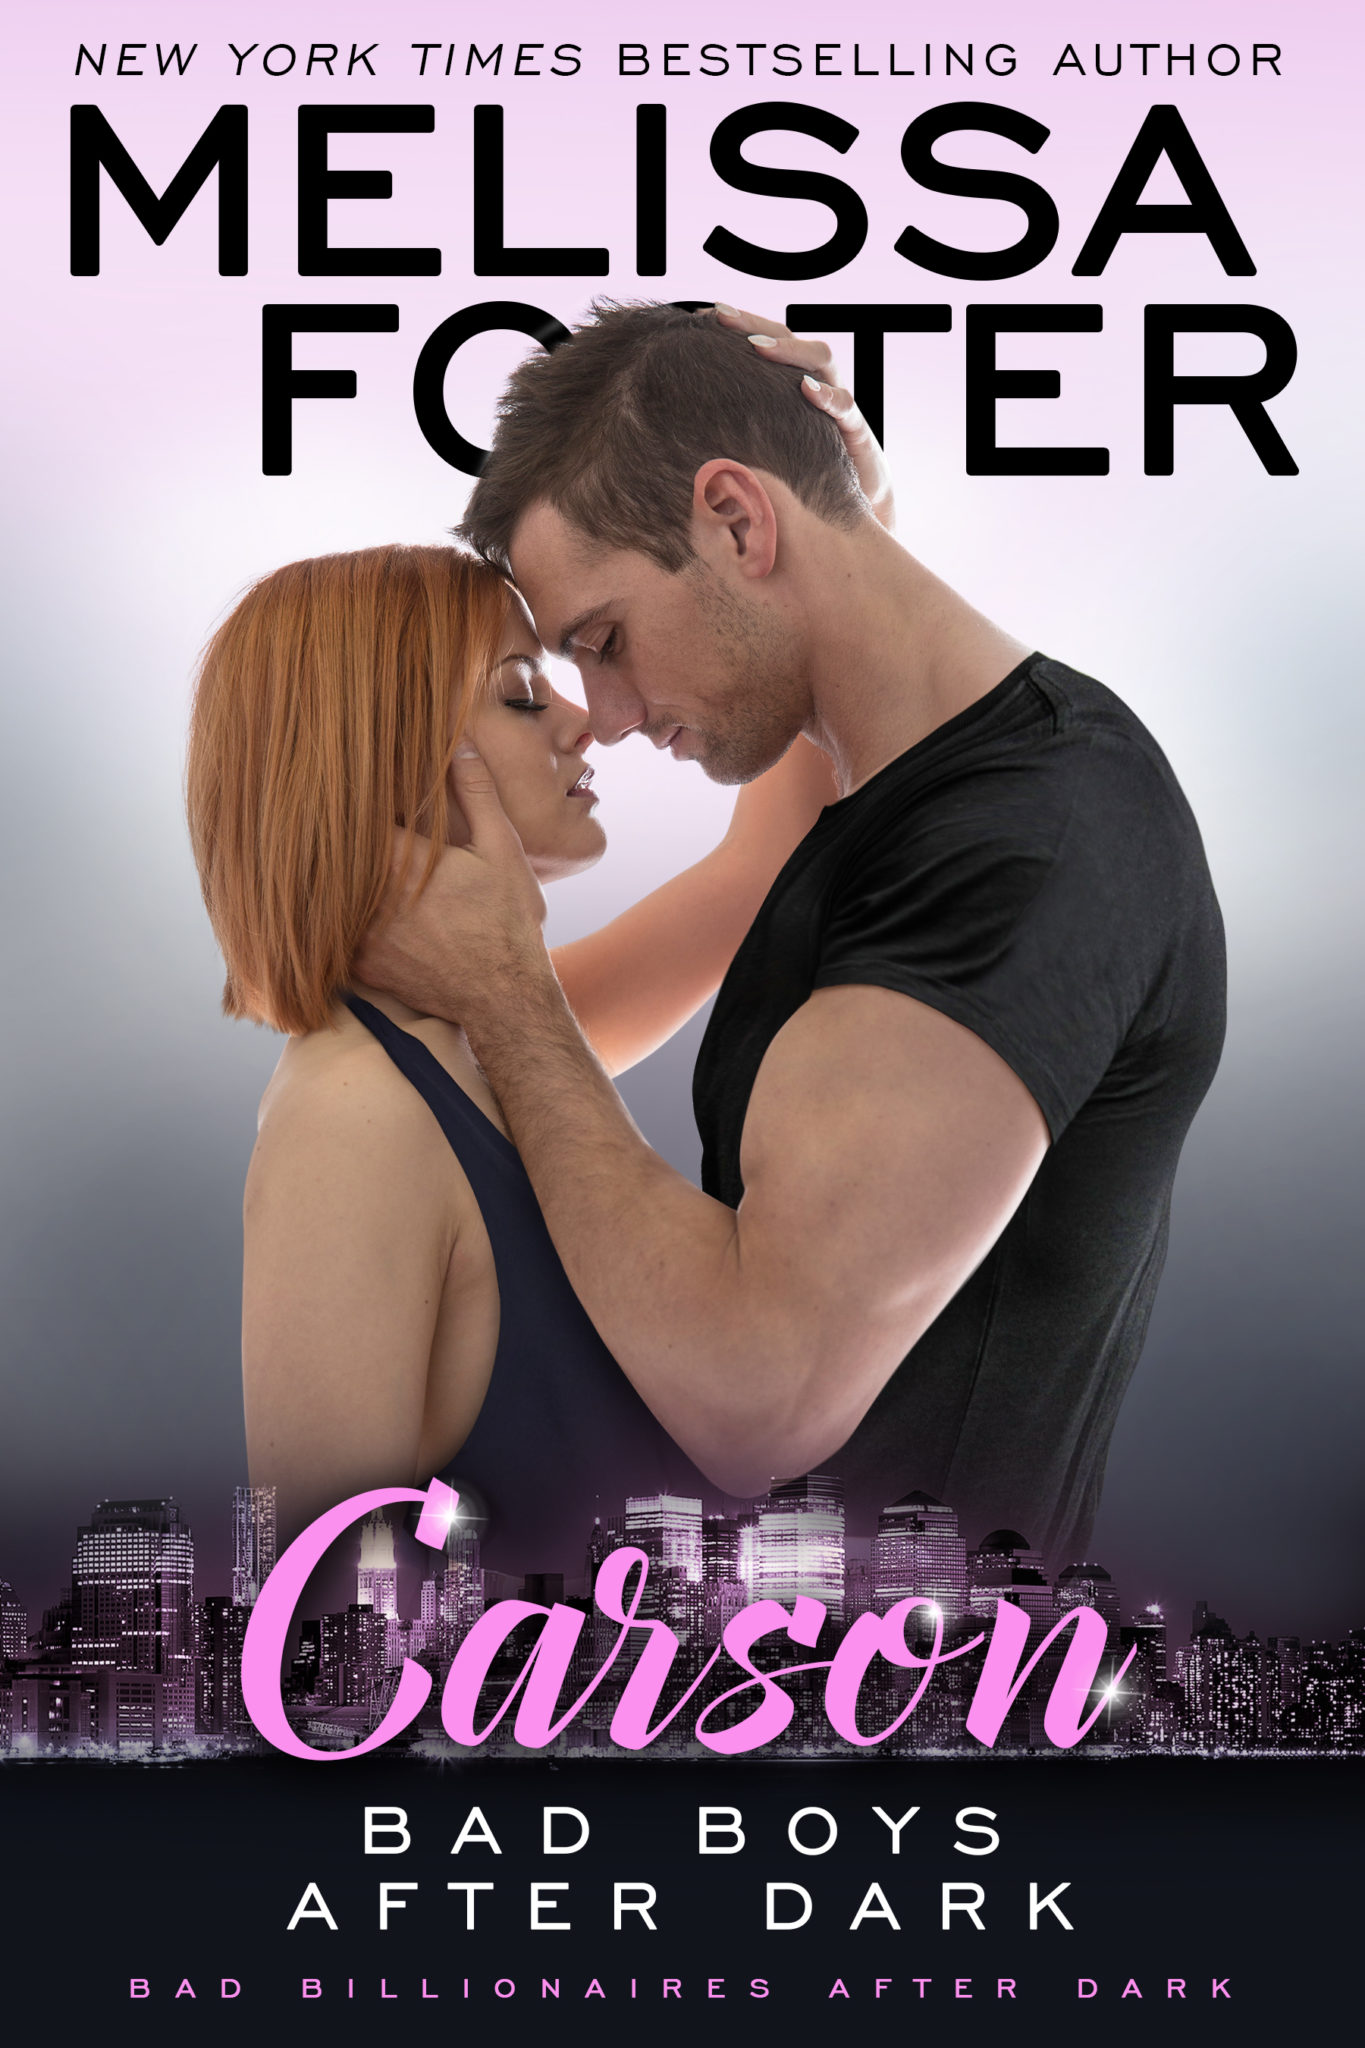 Blog Tour Review: Carson